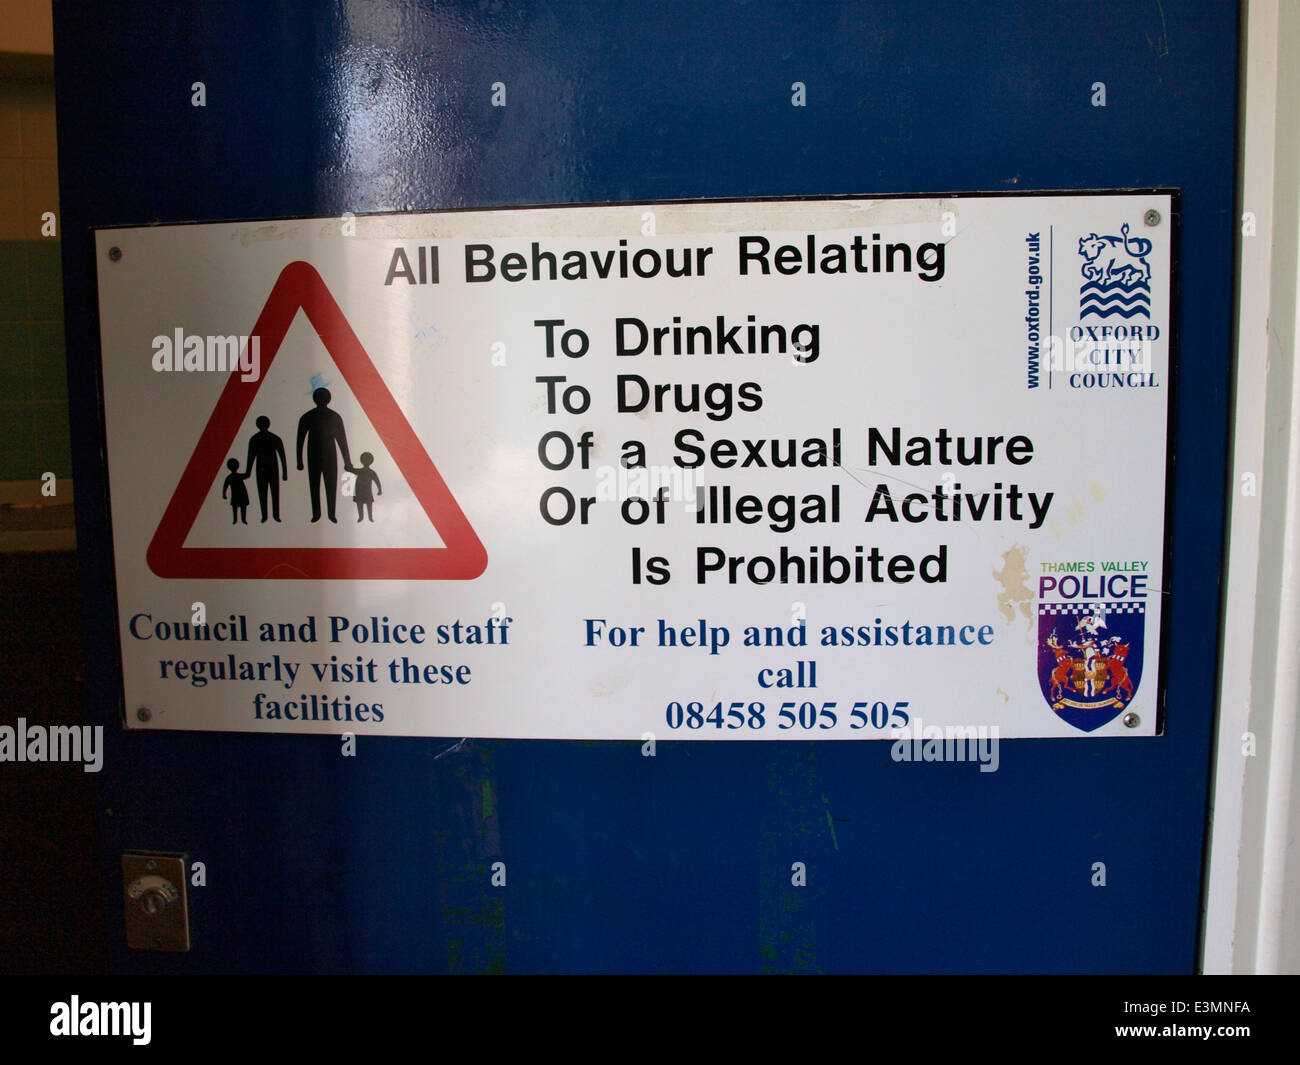 Oxford City Council and Thames Valley Police sign on a public toilet door, Oxford, UK - Stock Image